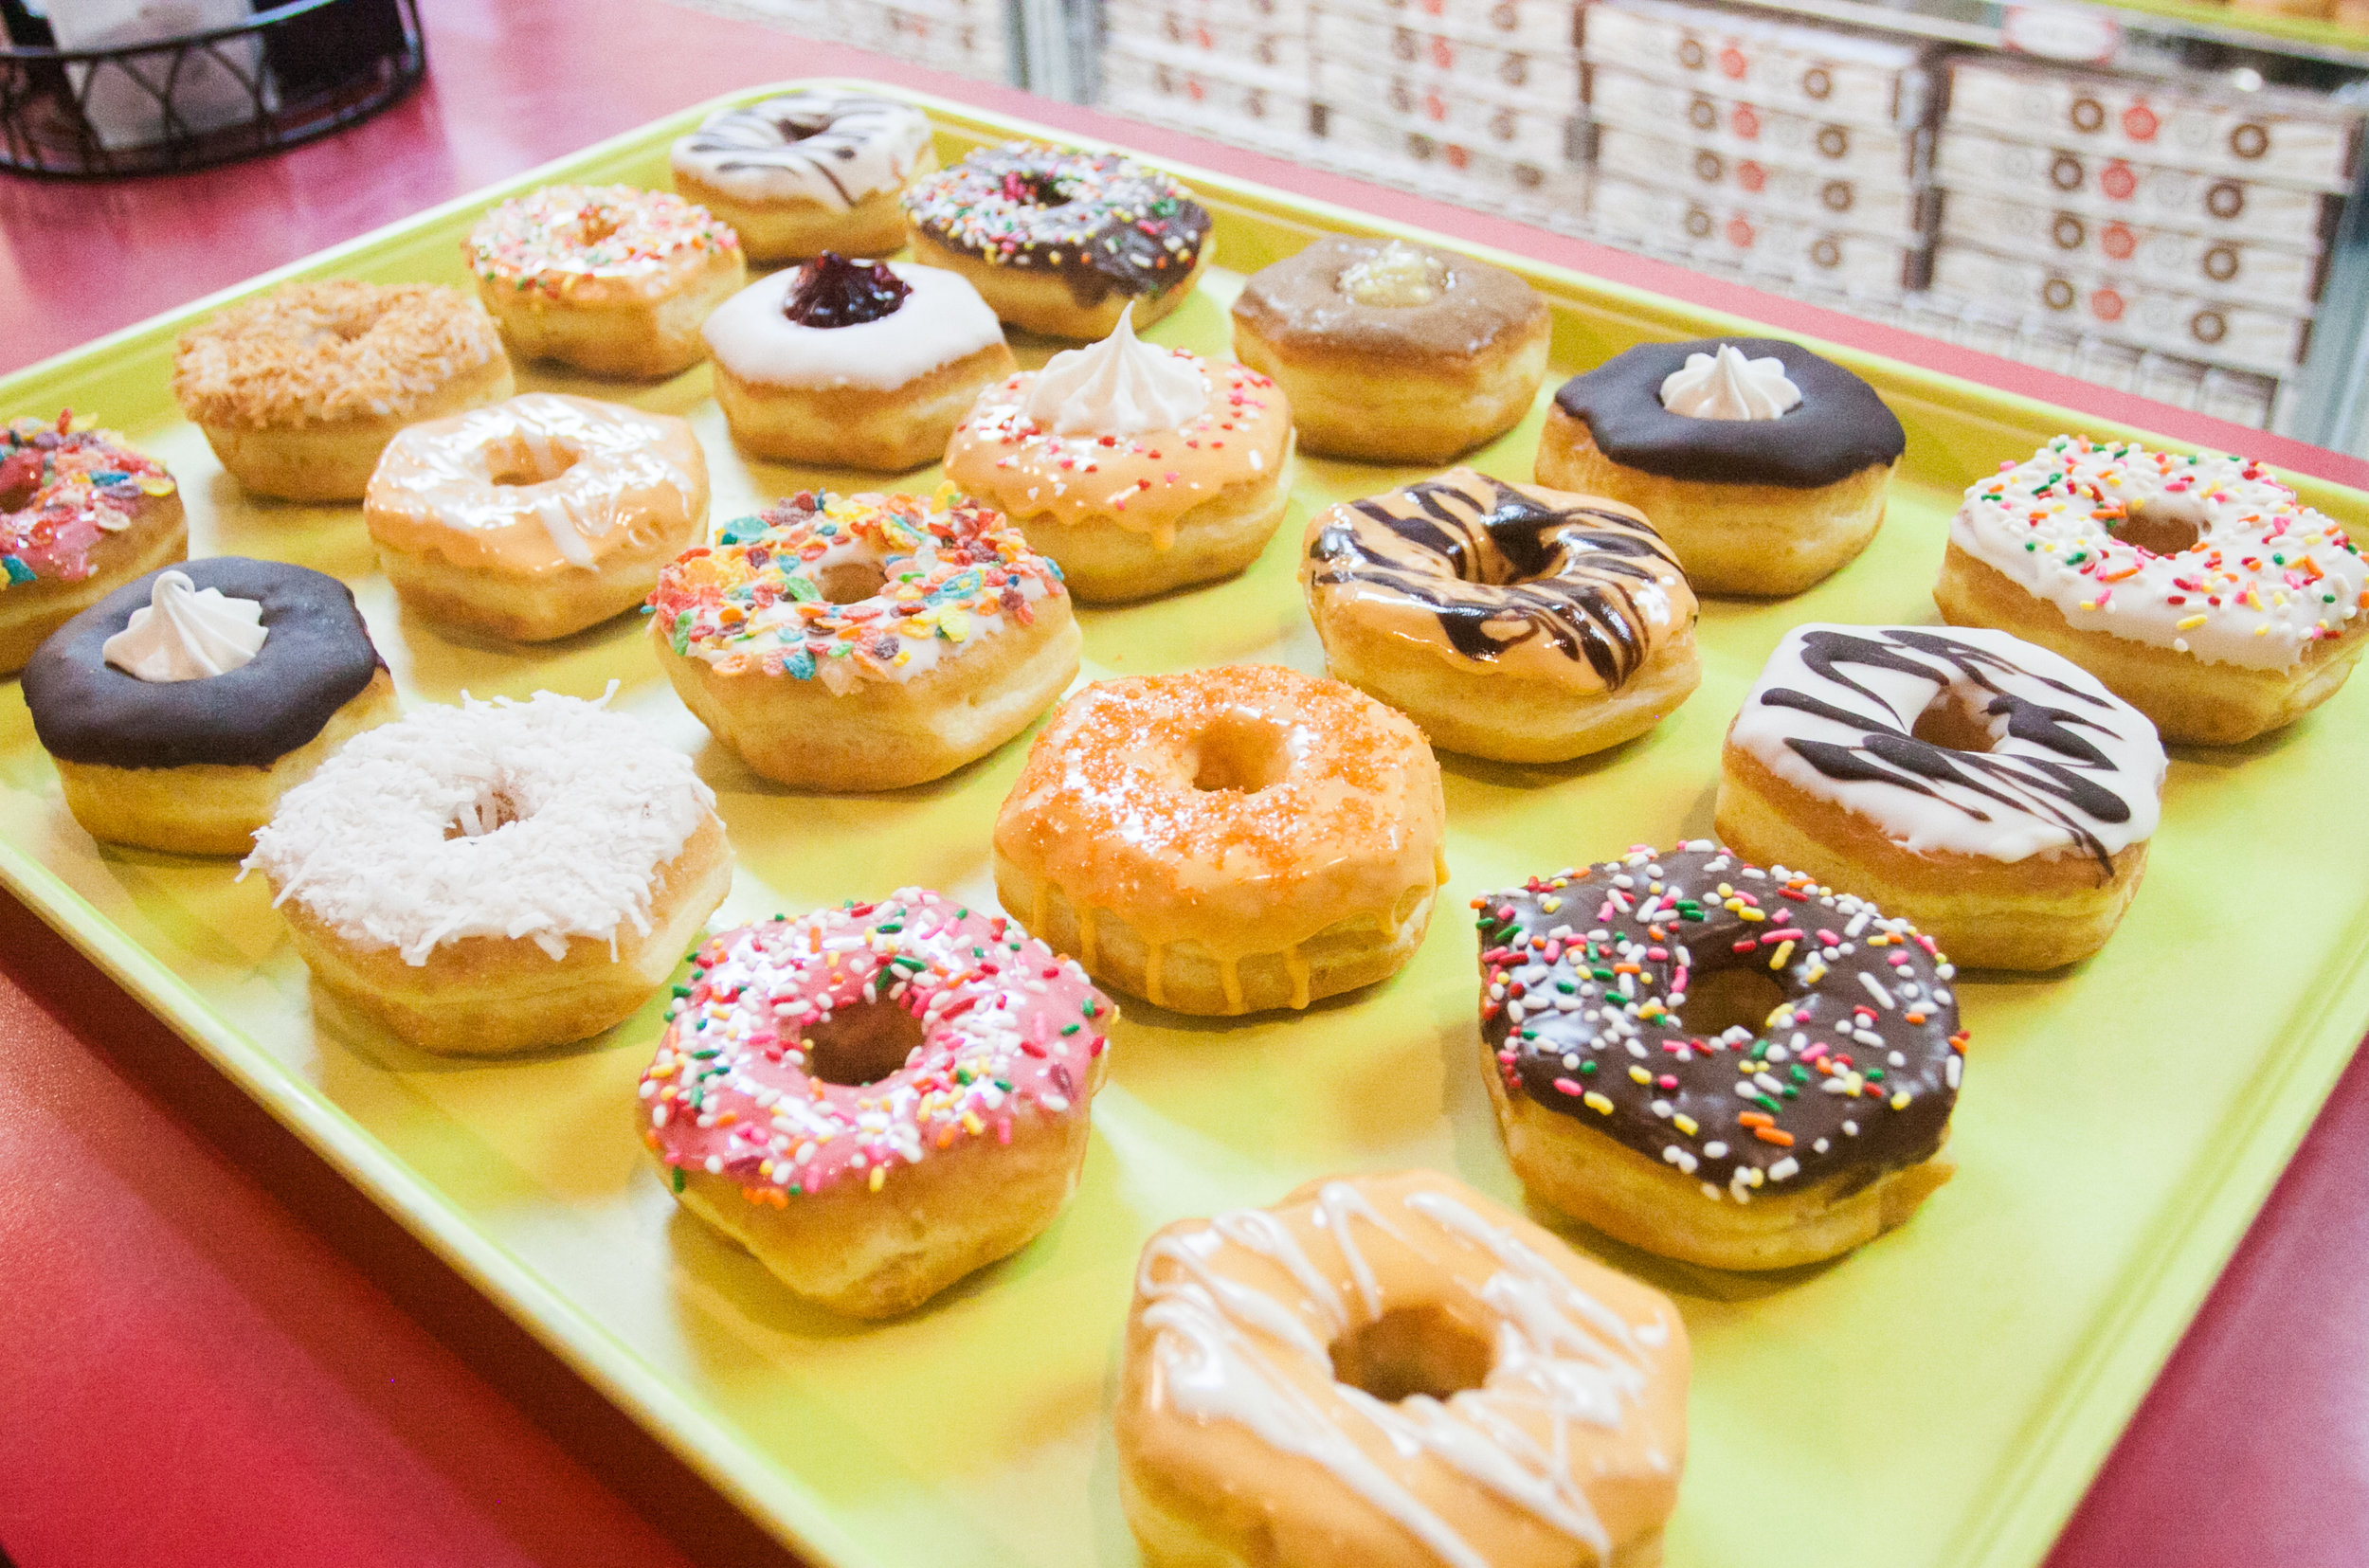 Let us cater your special occasion with a Party Tray from Fray's Donut House! Bridal and Baby showers, Birthdays and more!